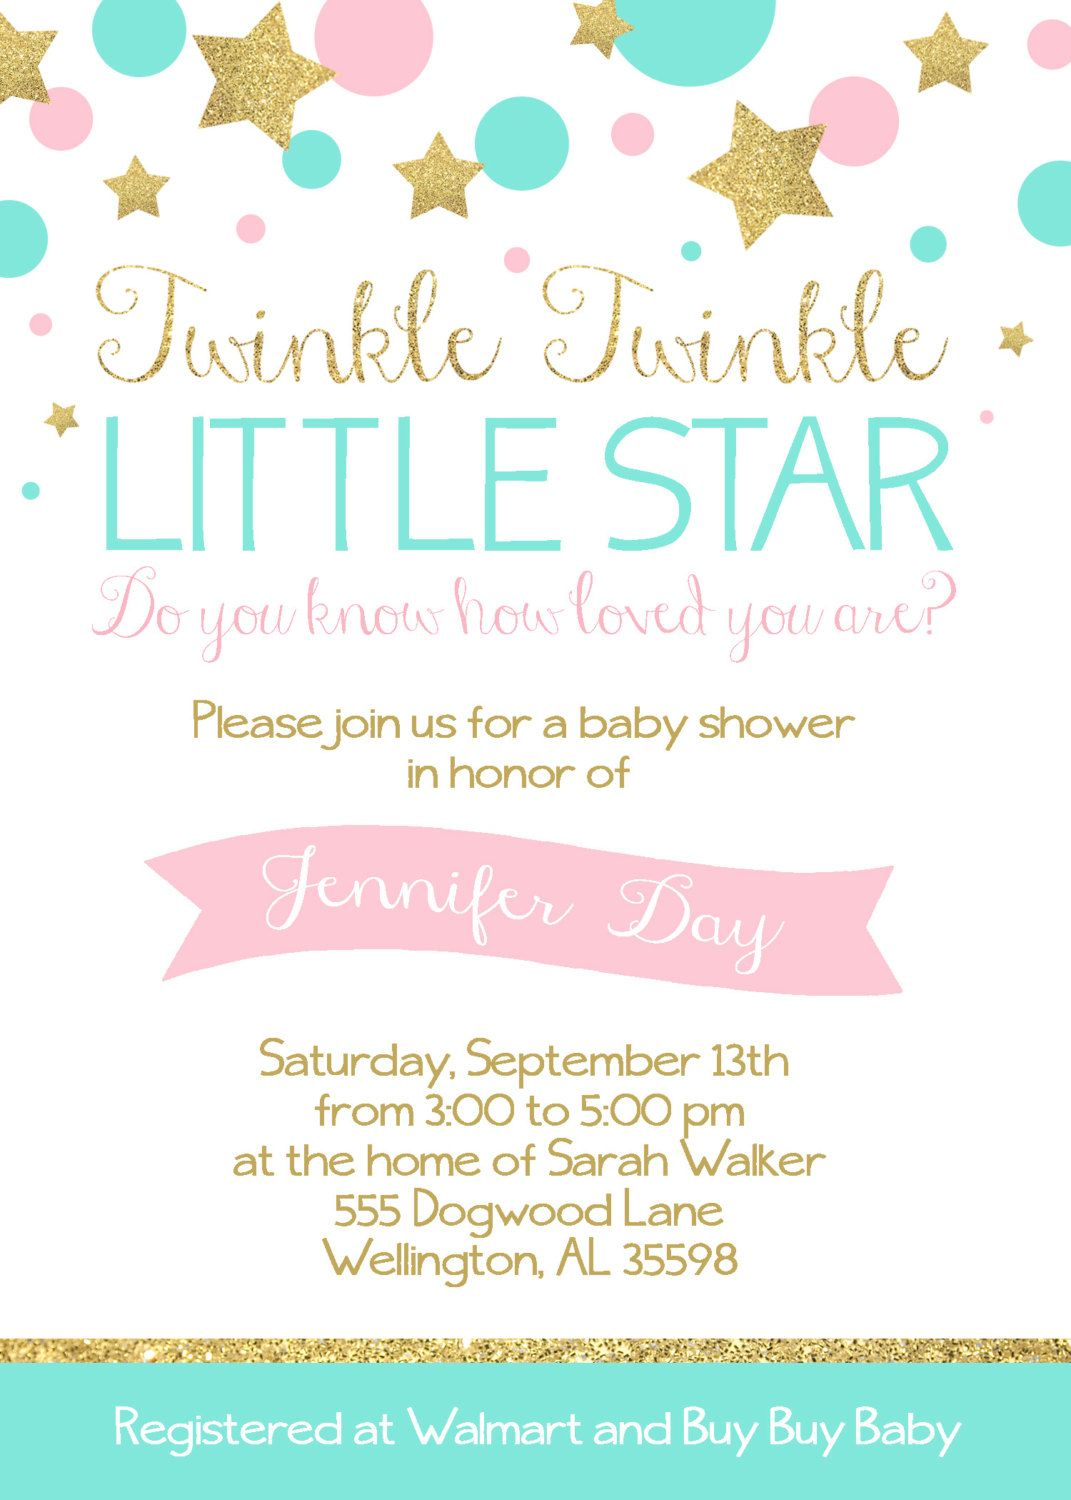 Twinkle Twinkle Little Star Baby Shower Invitation Wording : twinkle, little, shower, invitation, wording, Twinkle, Little, Shower, CamaleeKateStudio, Invitations,